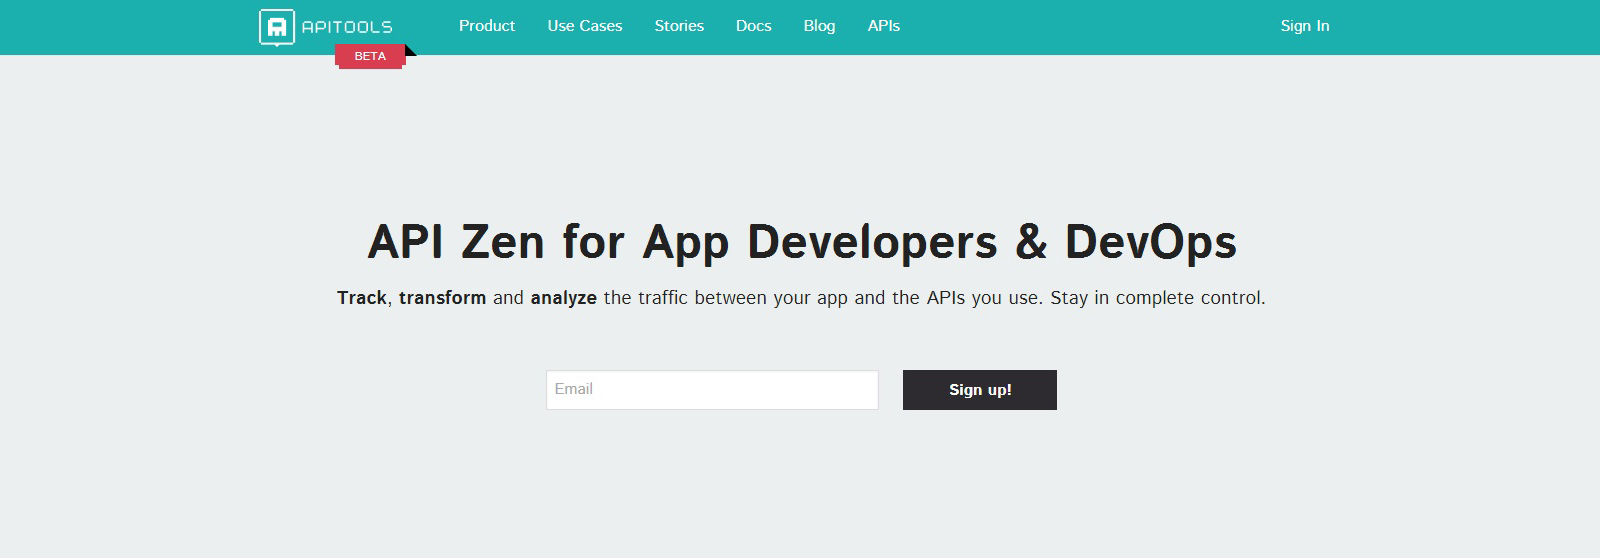 How-to-Become-a-Rock-Star-App-Developer-4